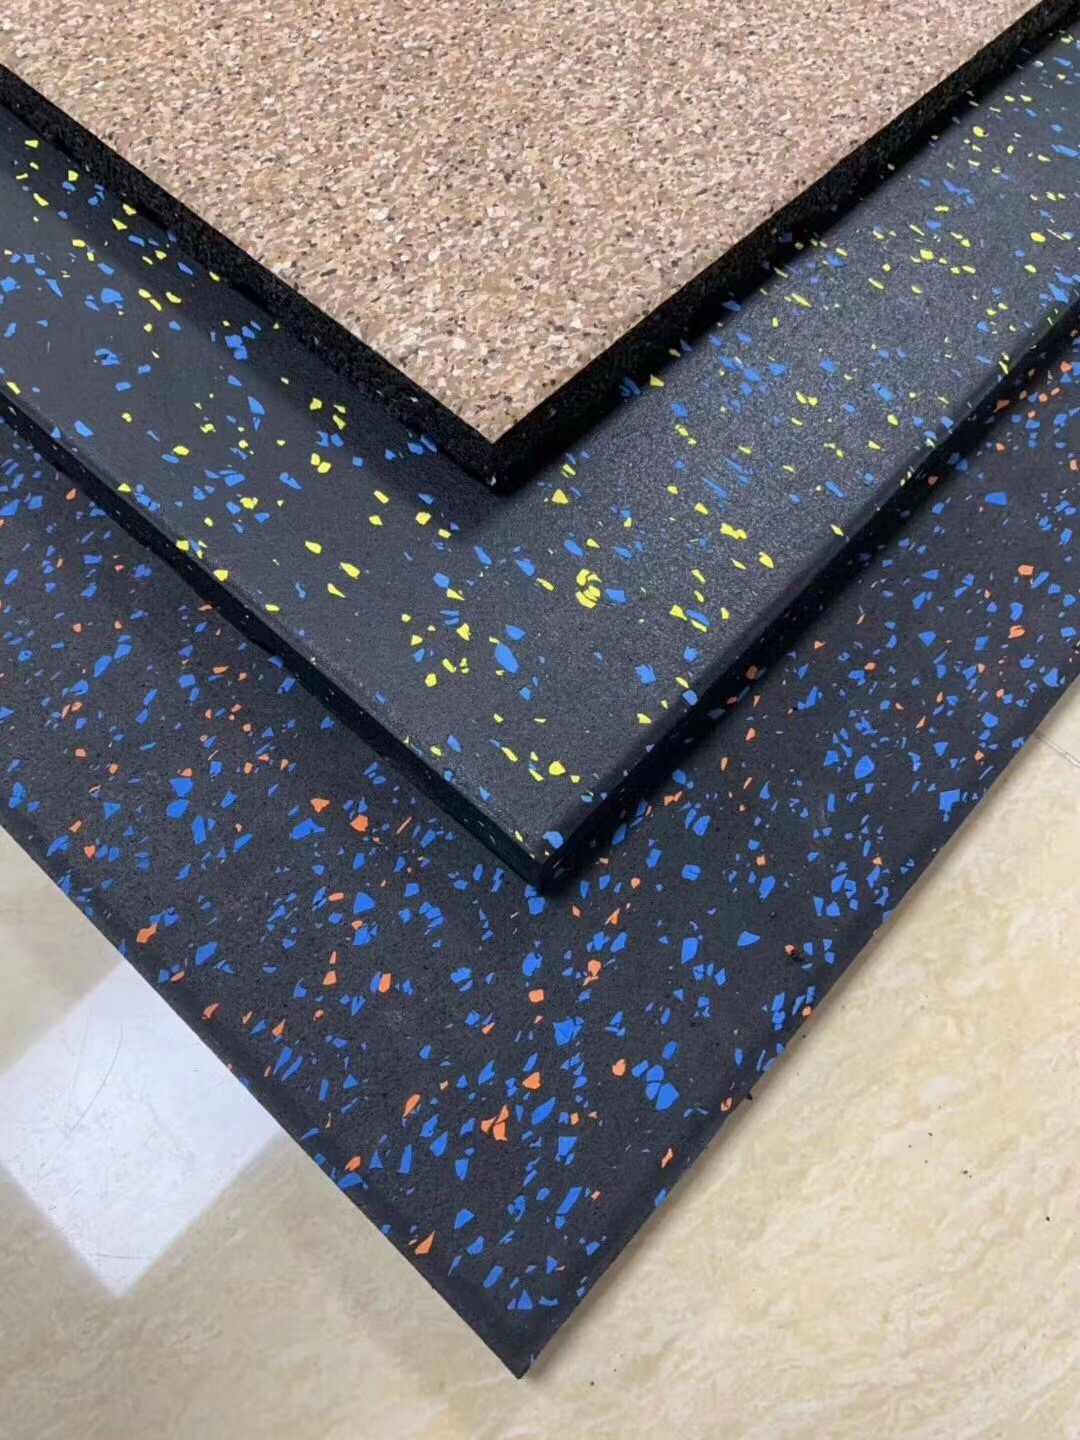 New Pattern of Fitness Rubber Flooring Come online since 10th Nov alt=